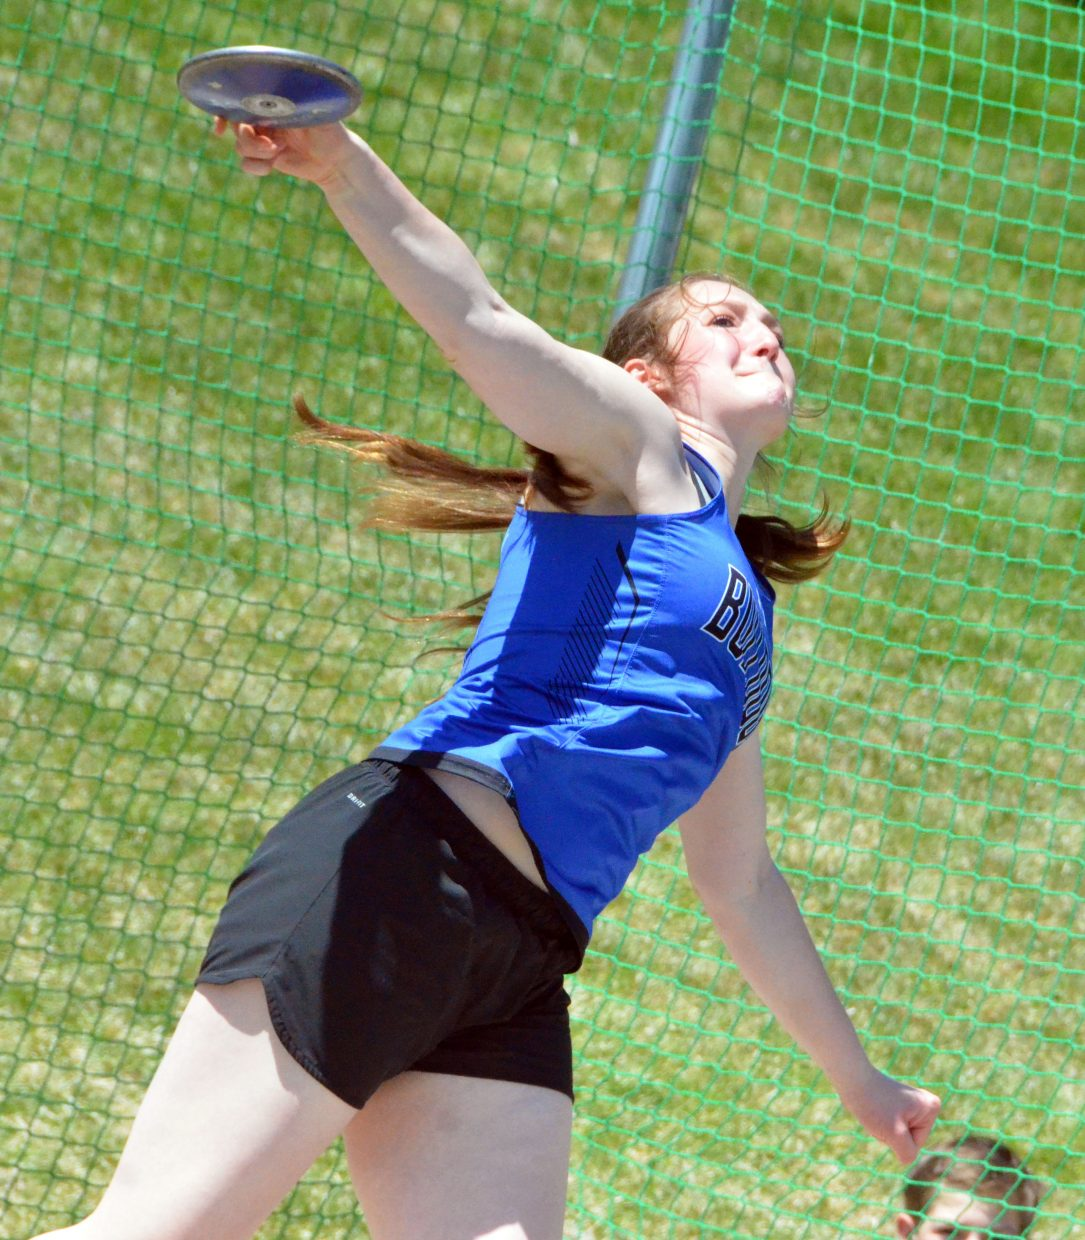 Moffat County High School's Tiffany Hildebrandt completes her throwing motion in the discus Friday at the Clint Wells Invitational.